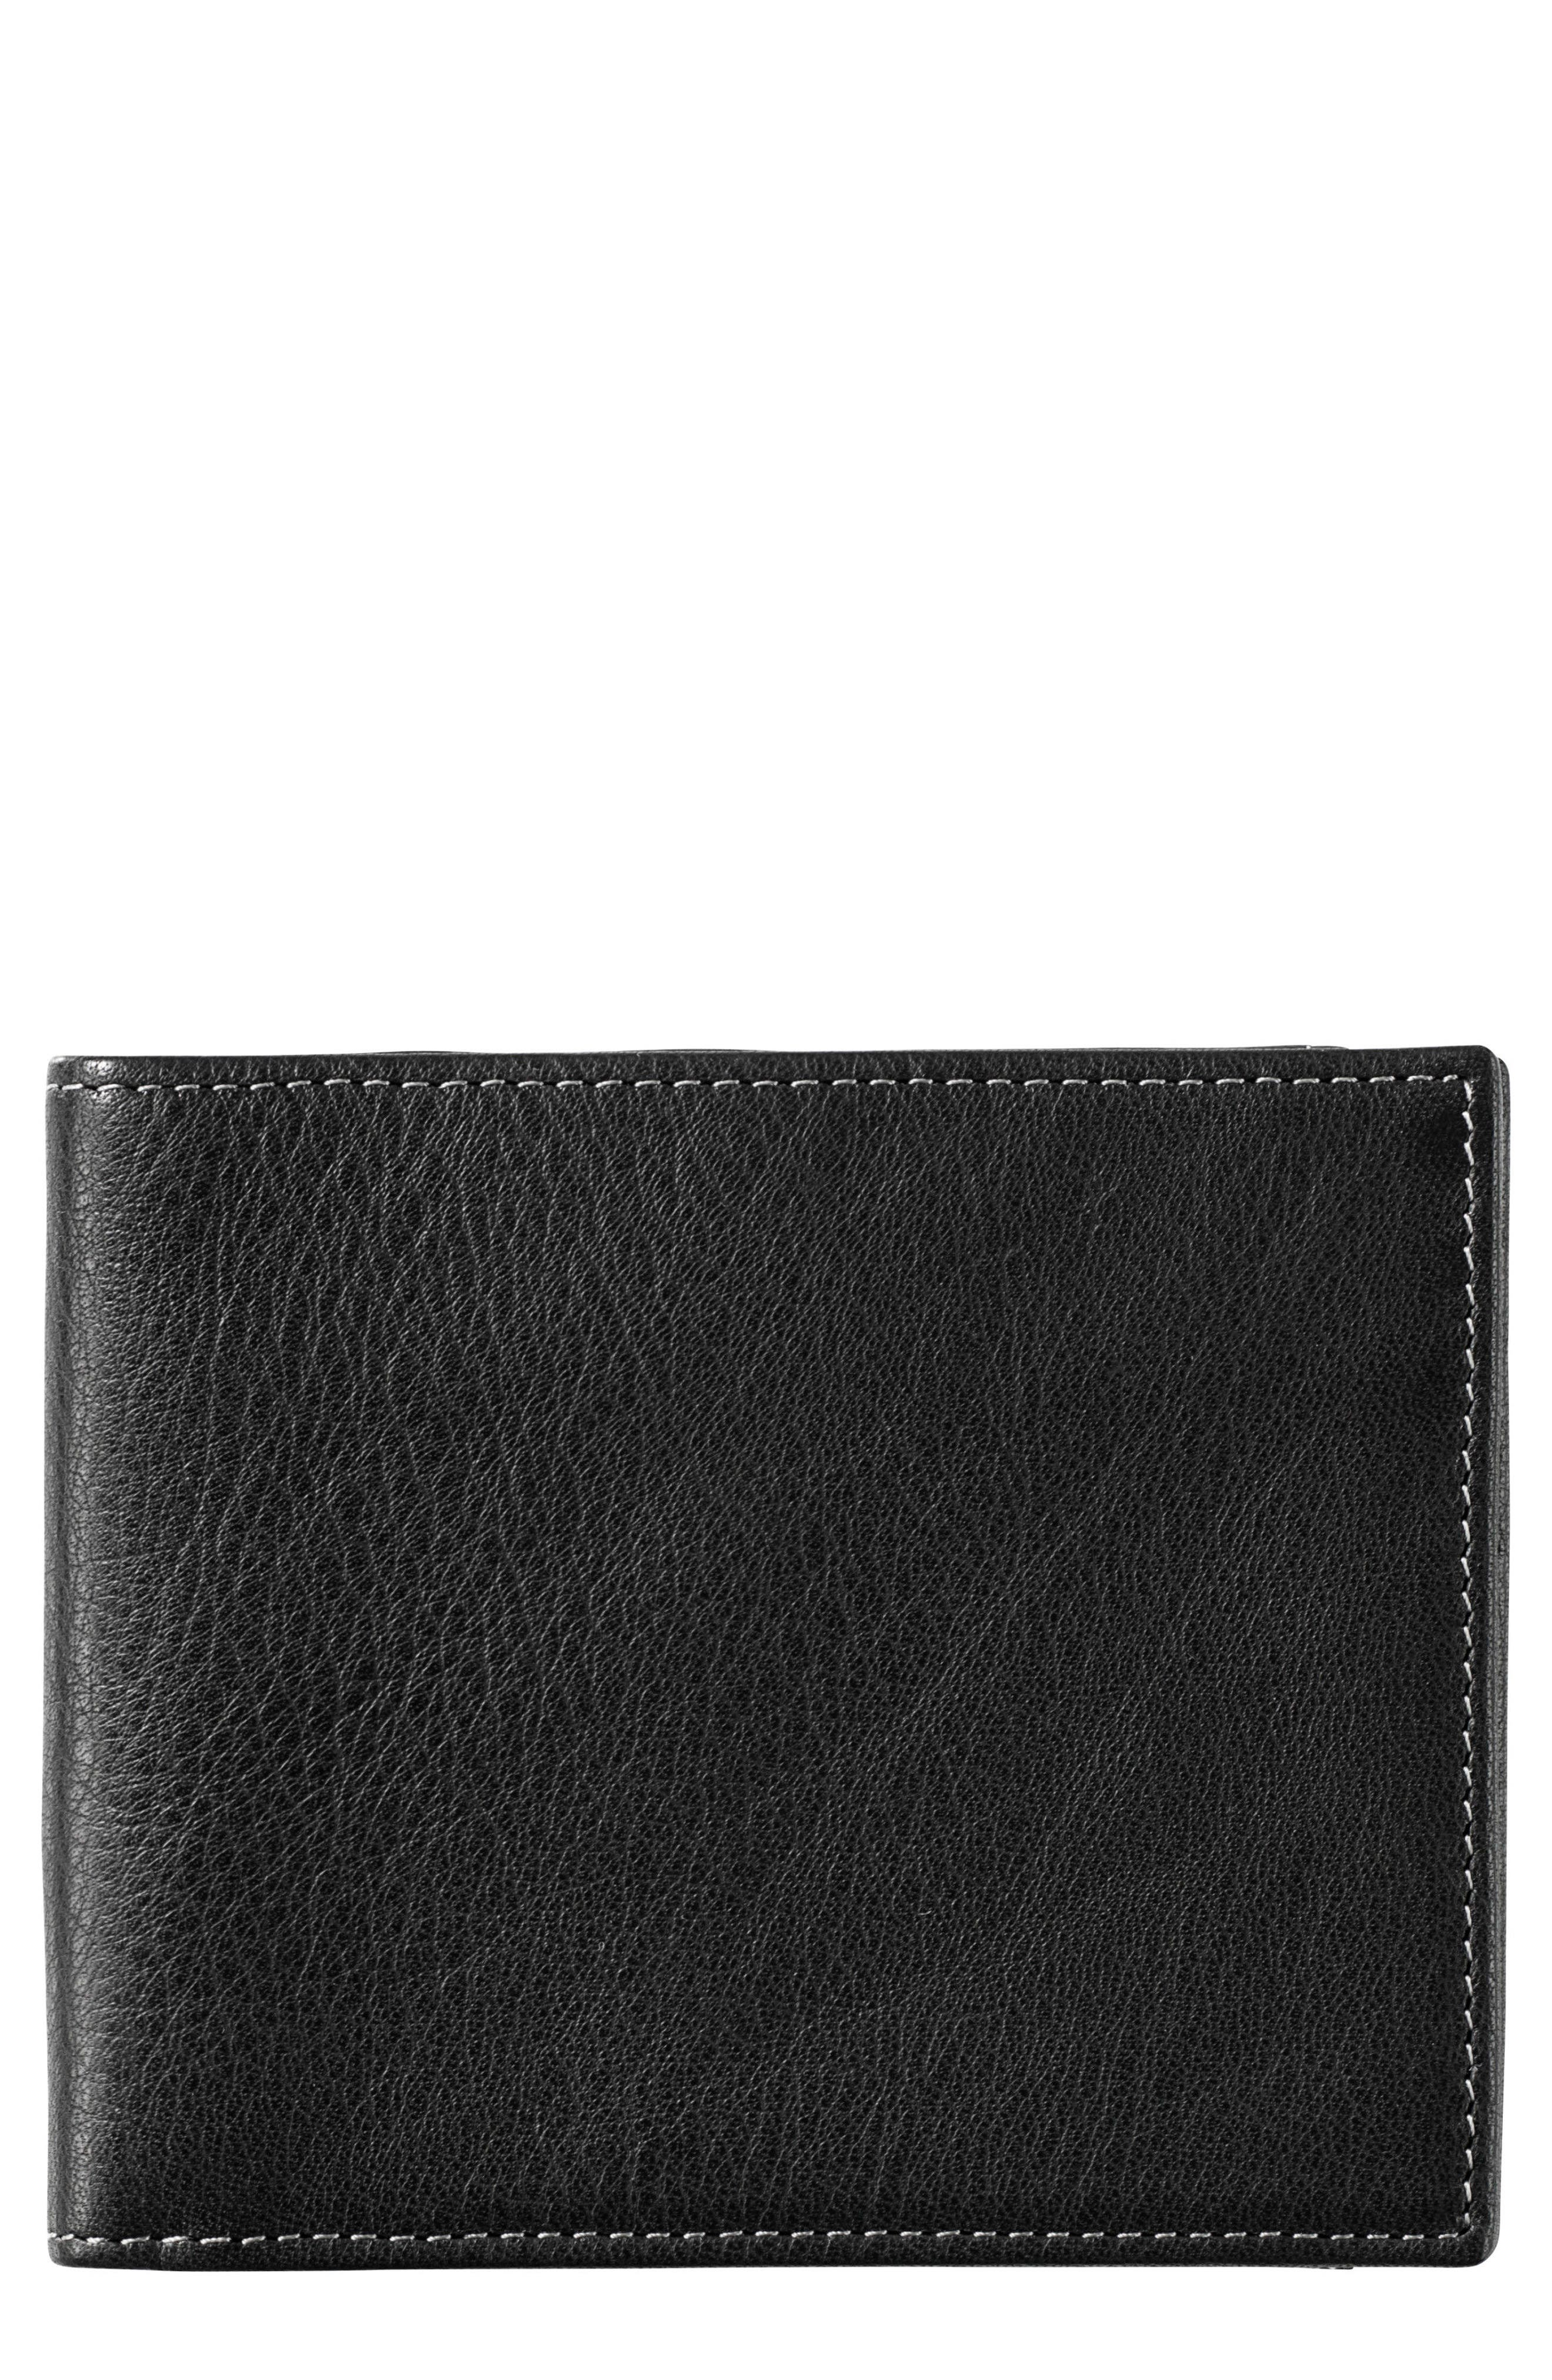 Leather Wallet,                             Main thumbnail 1, color,                             BLACK